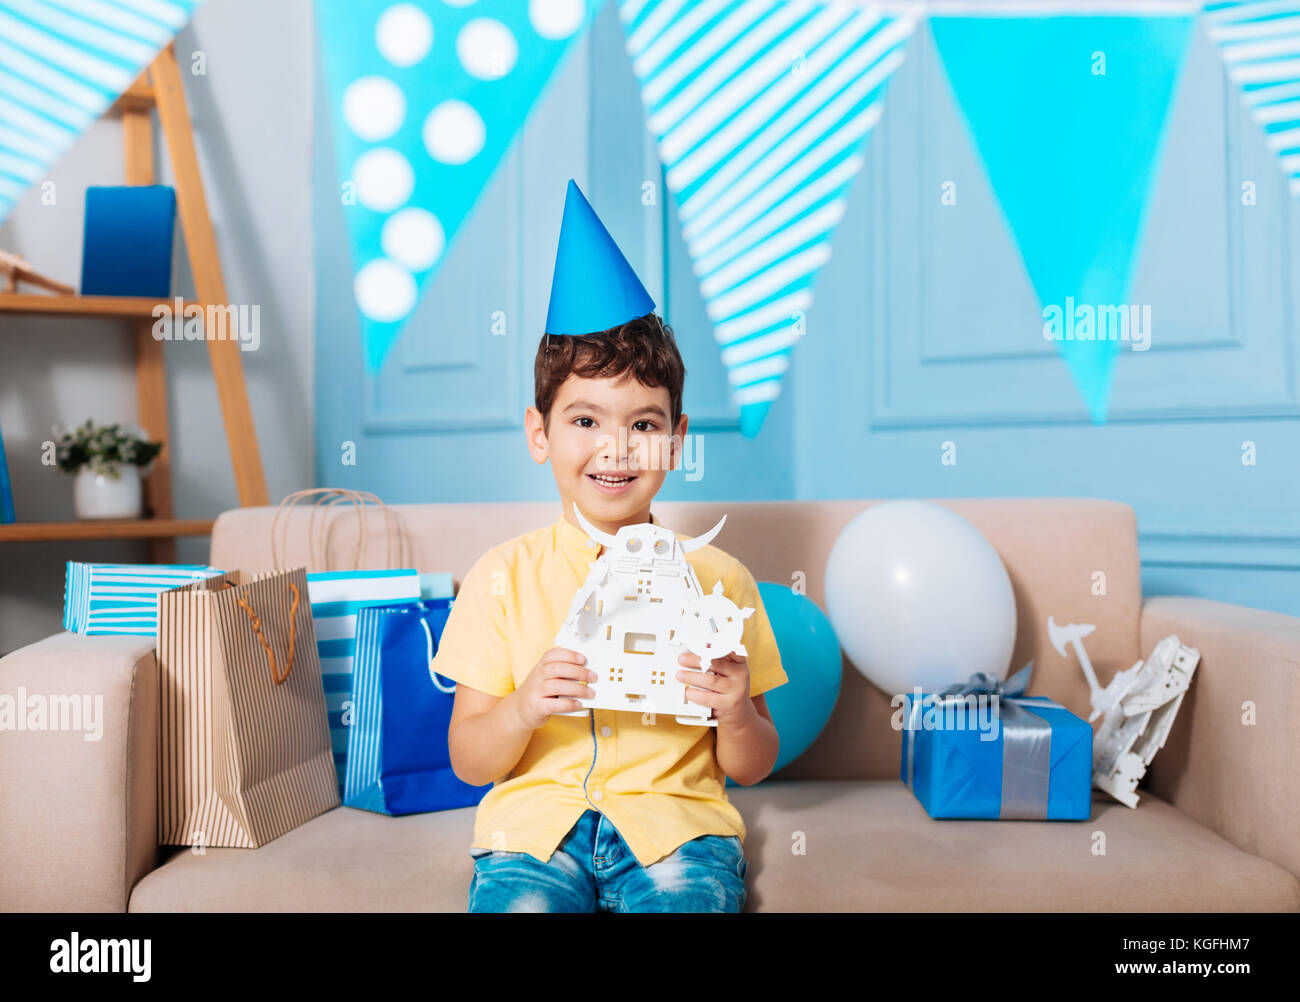 Adorable boy showing his birthday gift - Stock Image